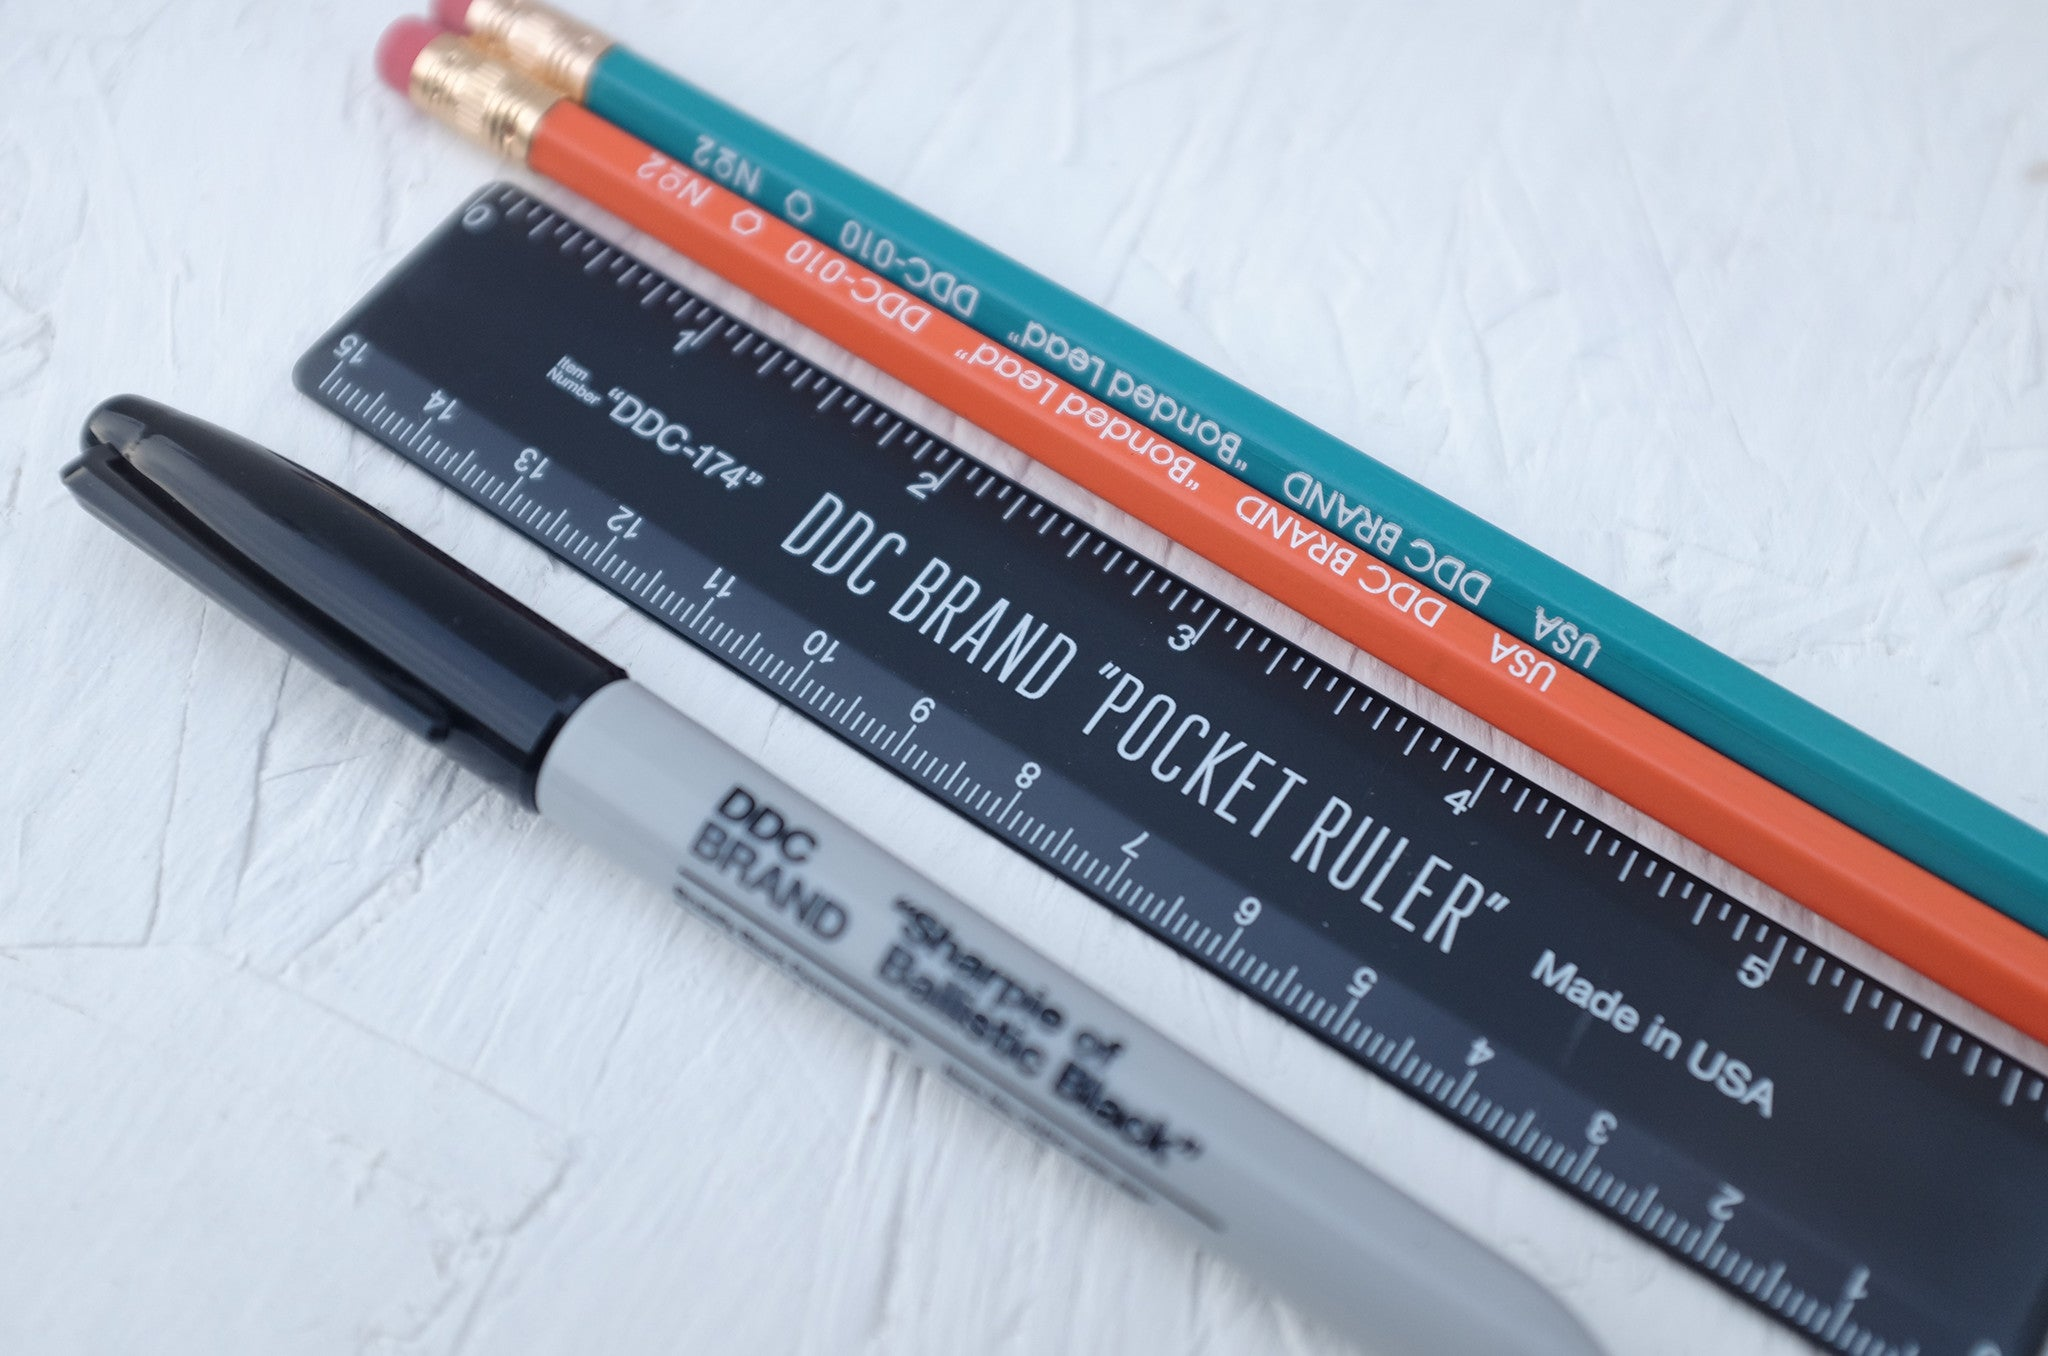 DDC Pocket Ruler